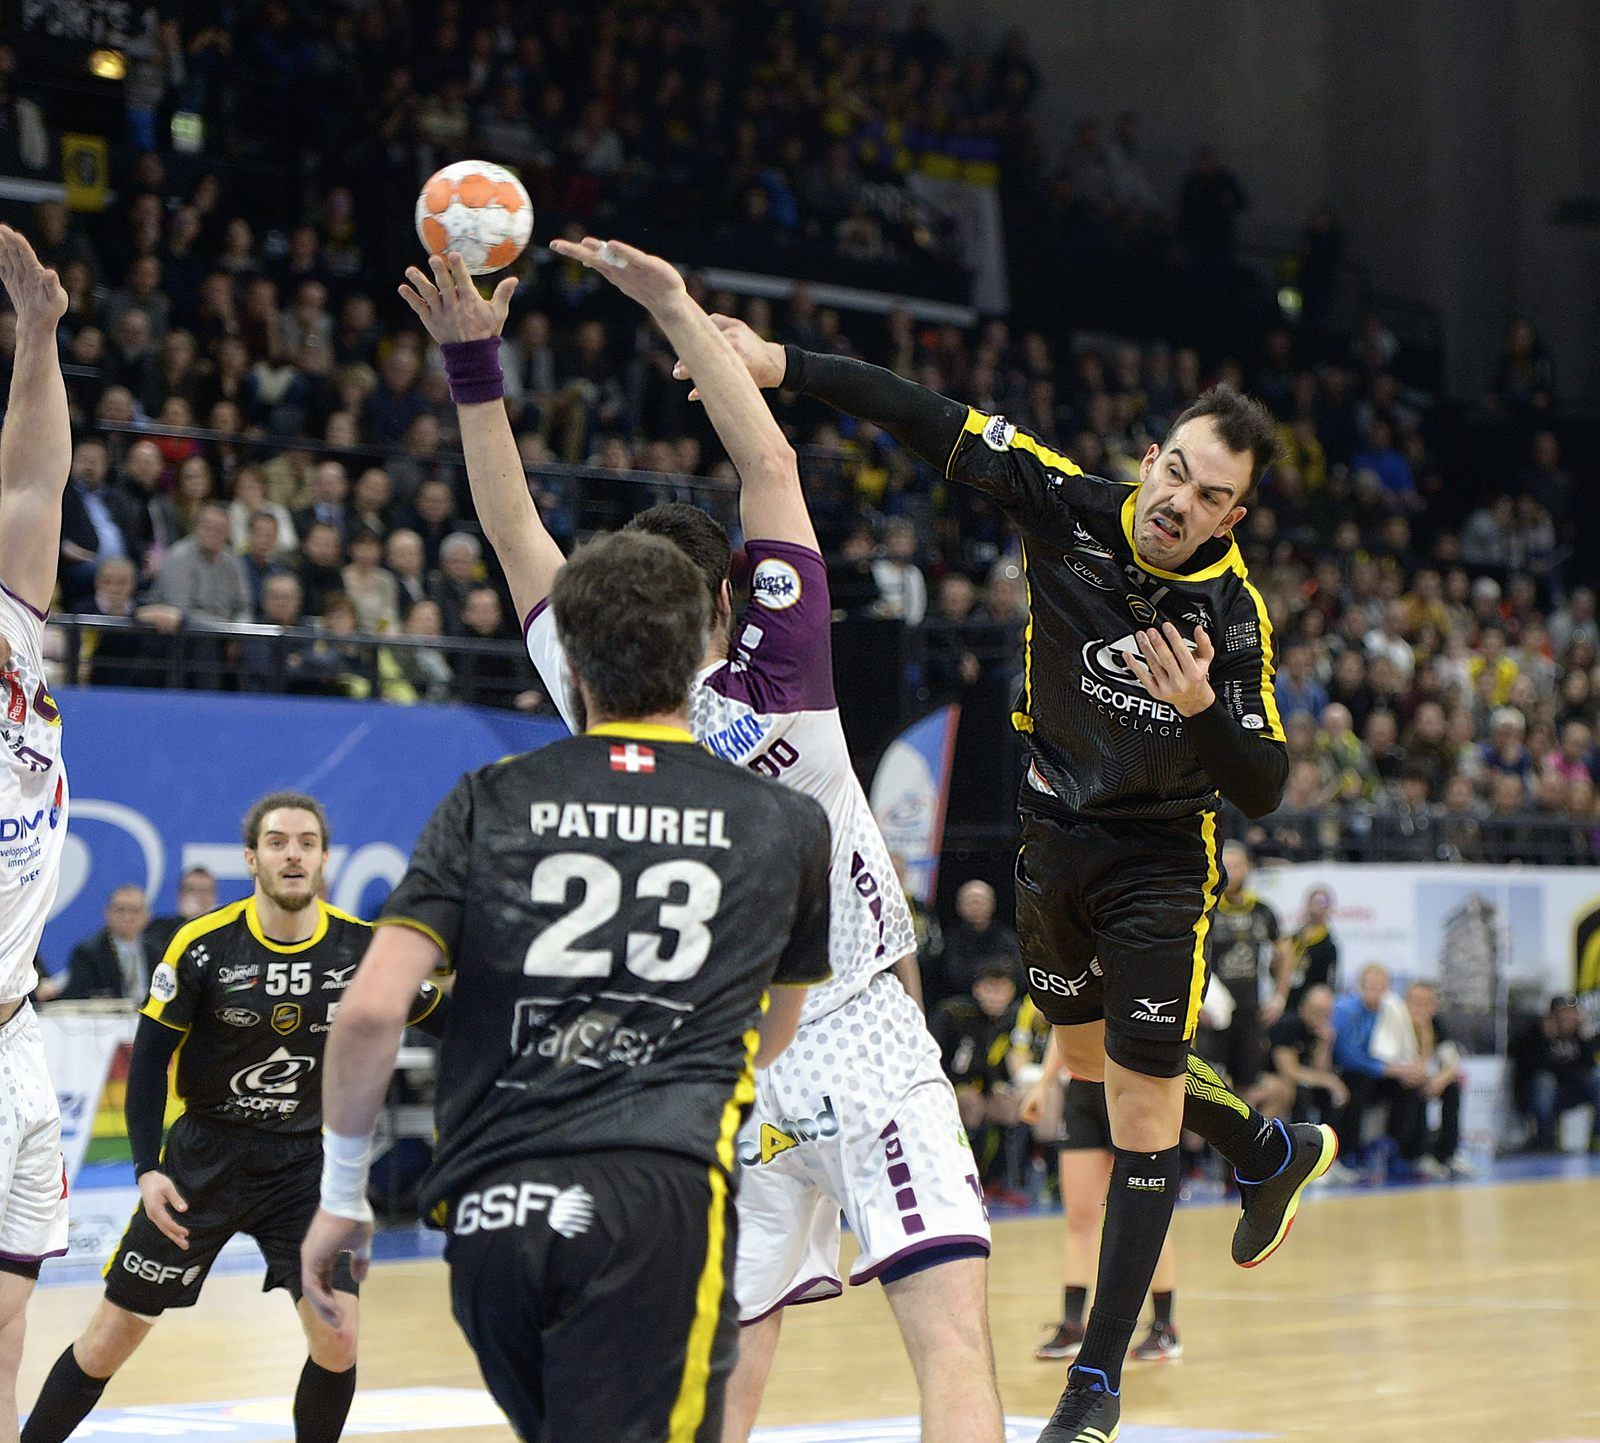 Nantes prend sa revanche au Phare ! Les photos du match 14 février 2019